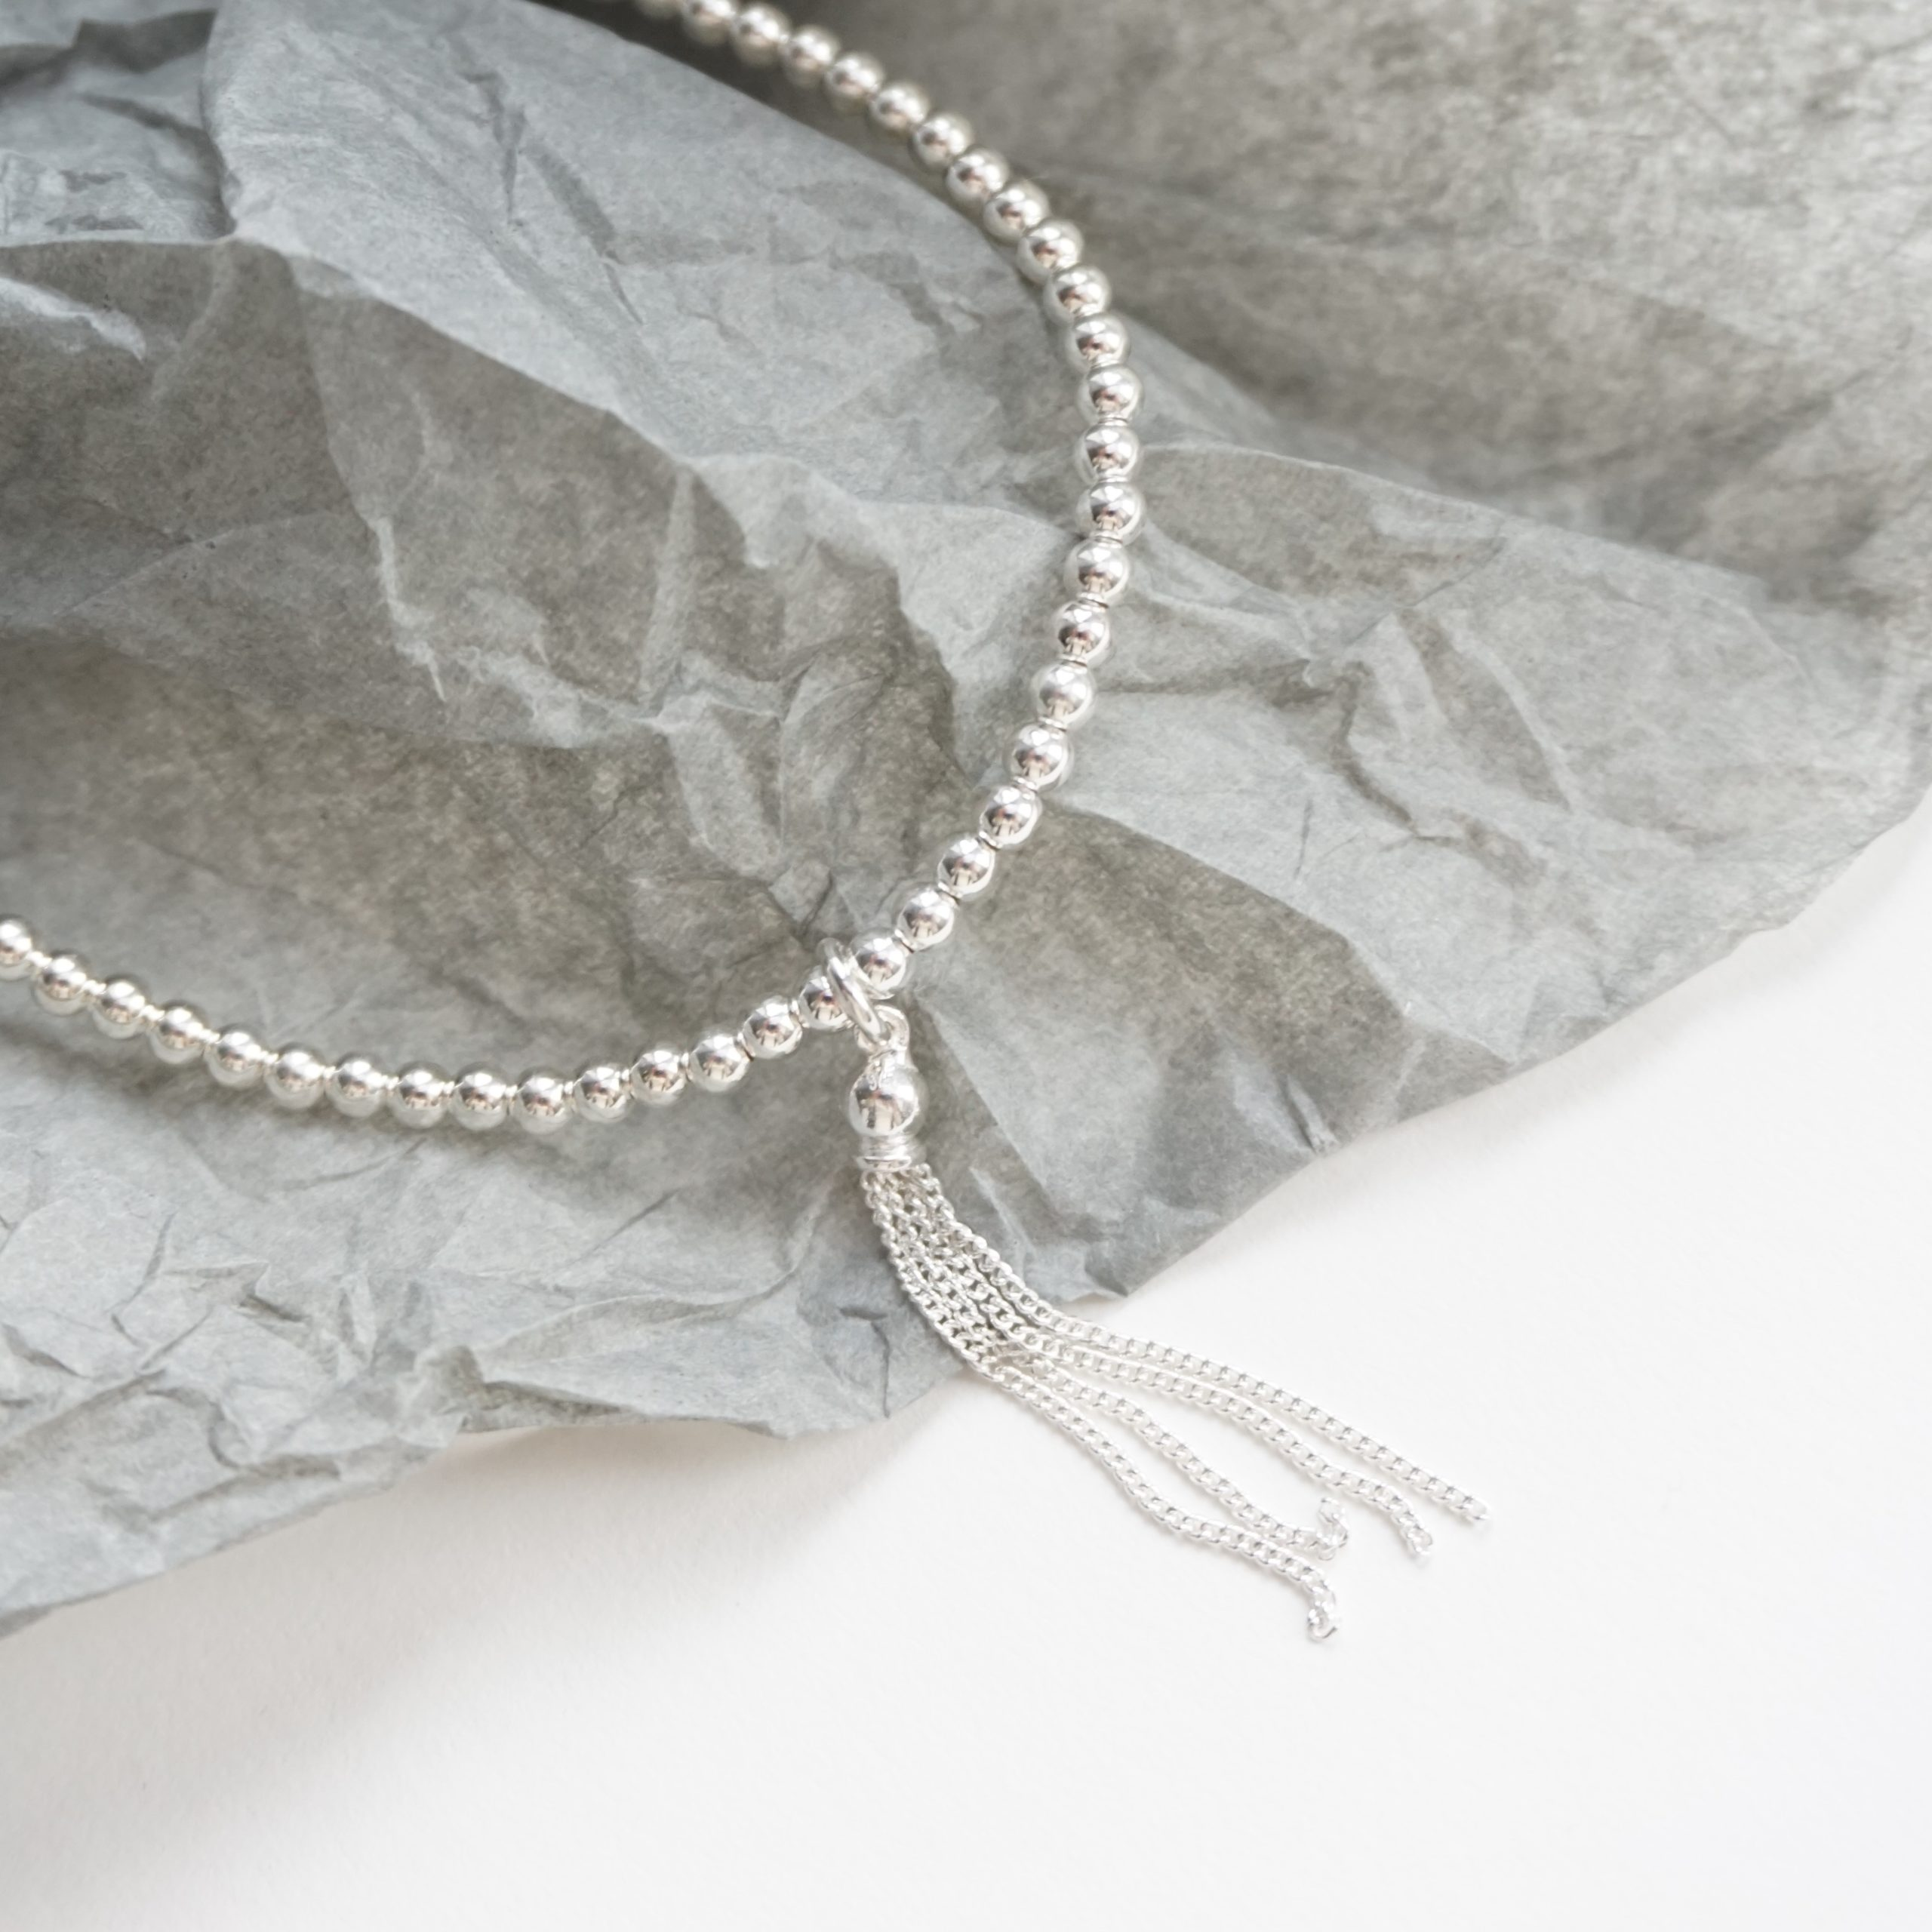 sterling silver anklet with tassel charm